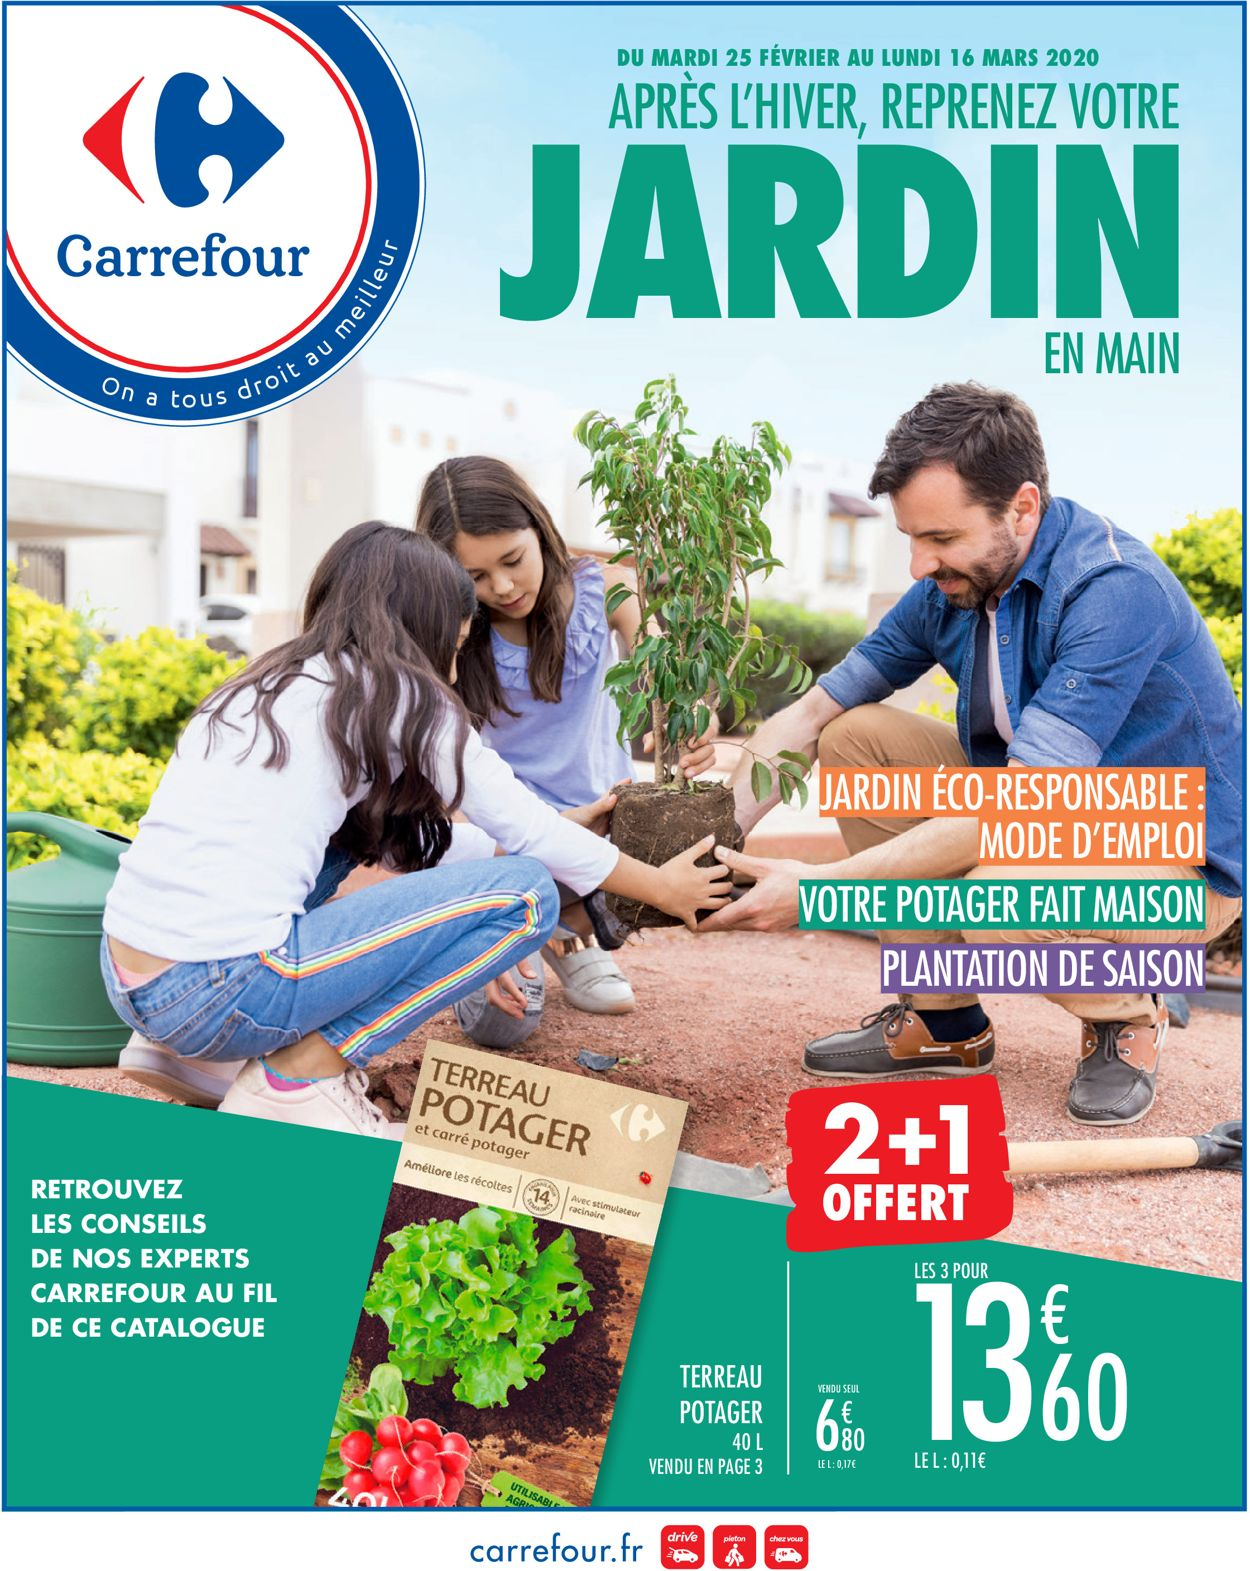 Carrefour Catalogue - 25.02-16.03.2020